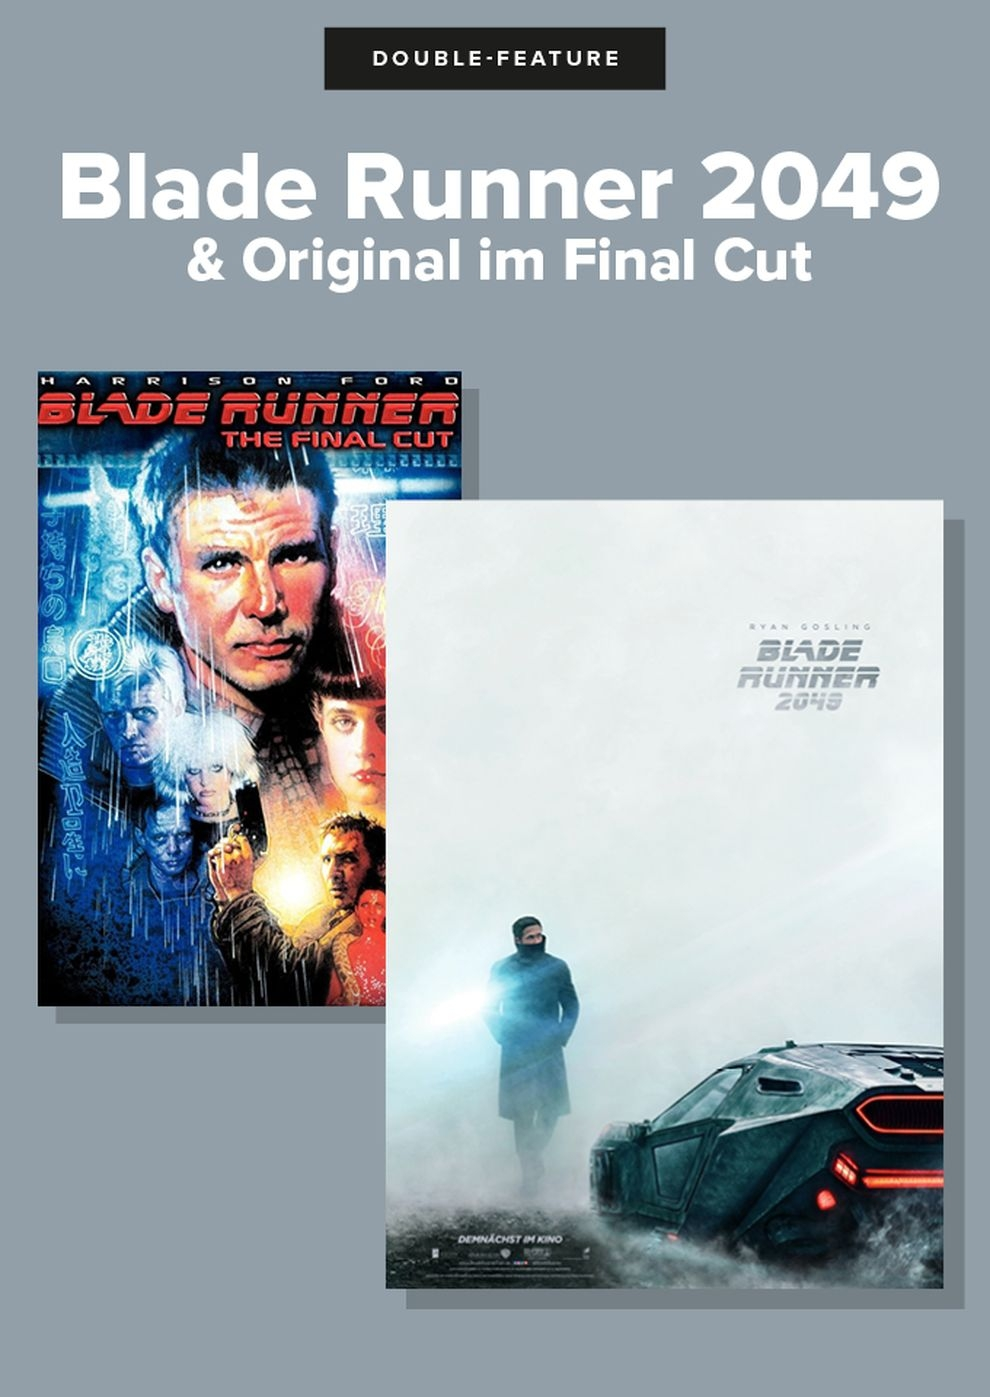 Double Feature: Blade Runner (Poster)